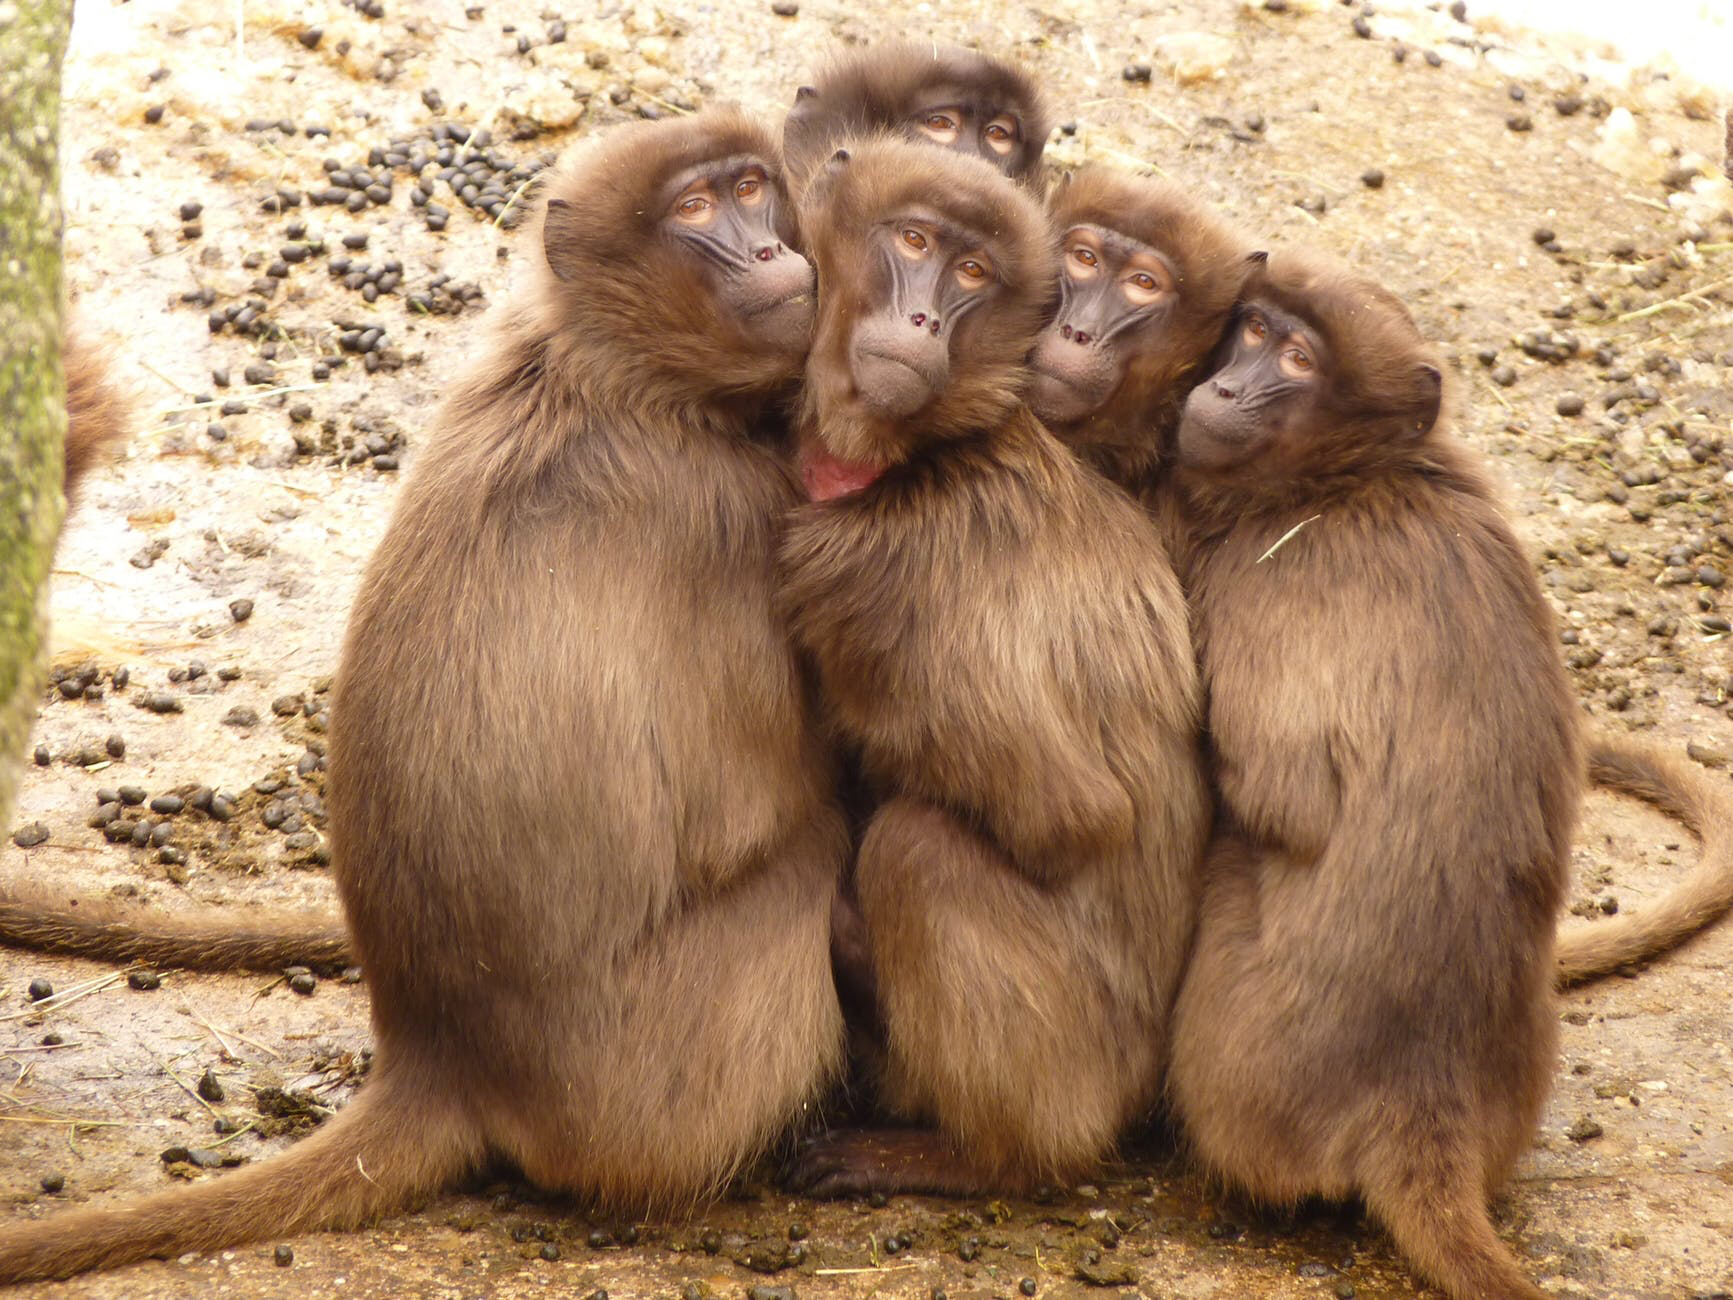 Group of monkeys together